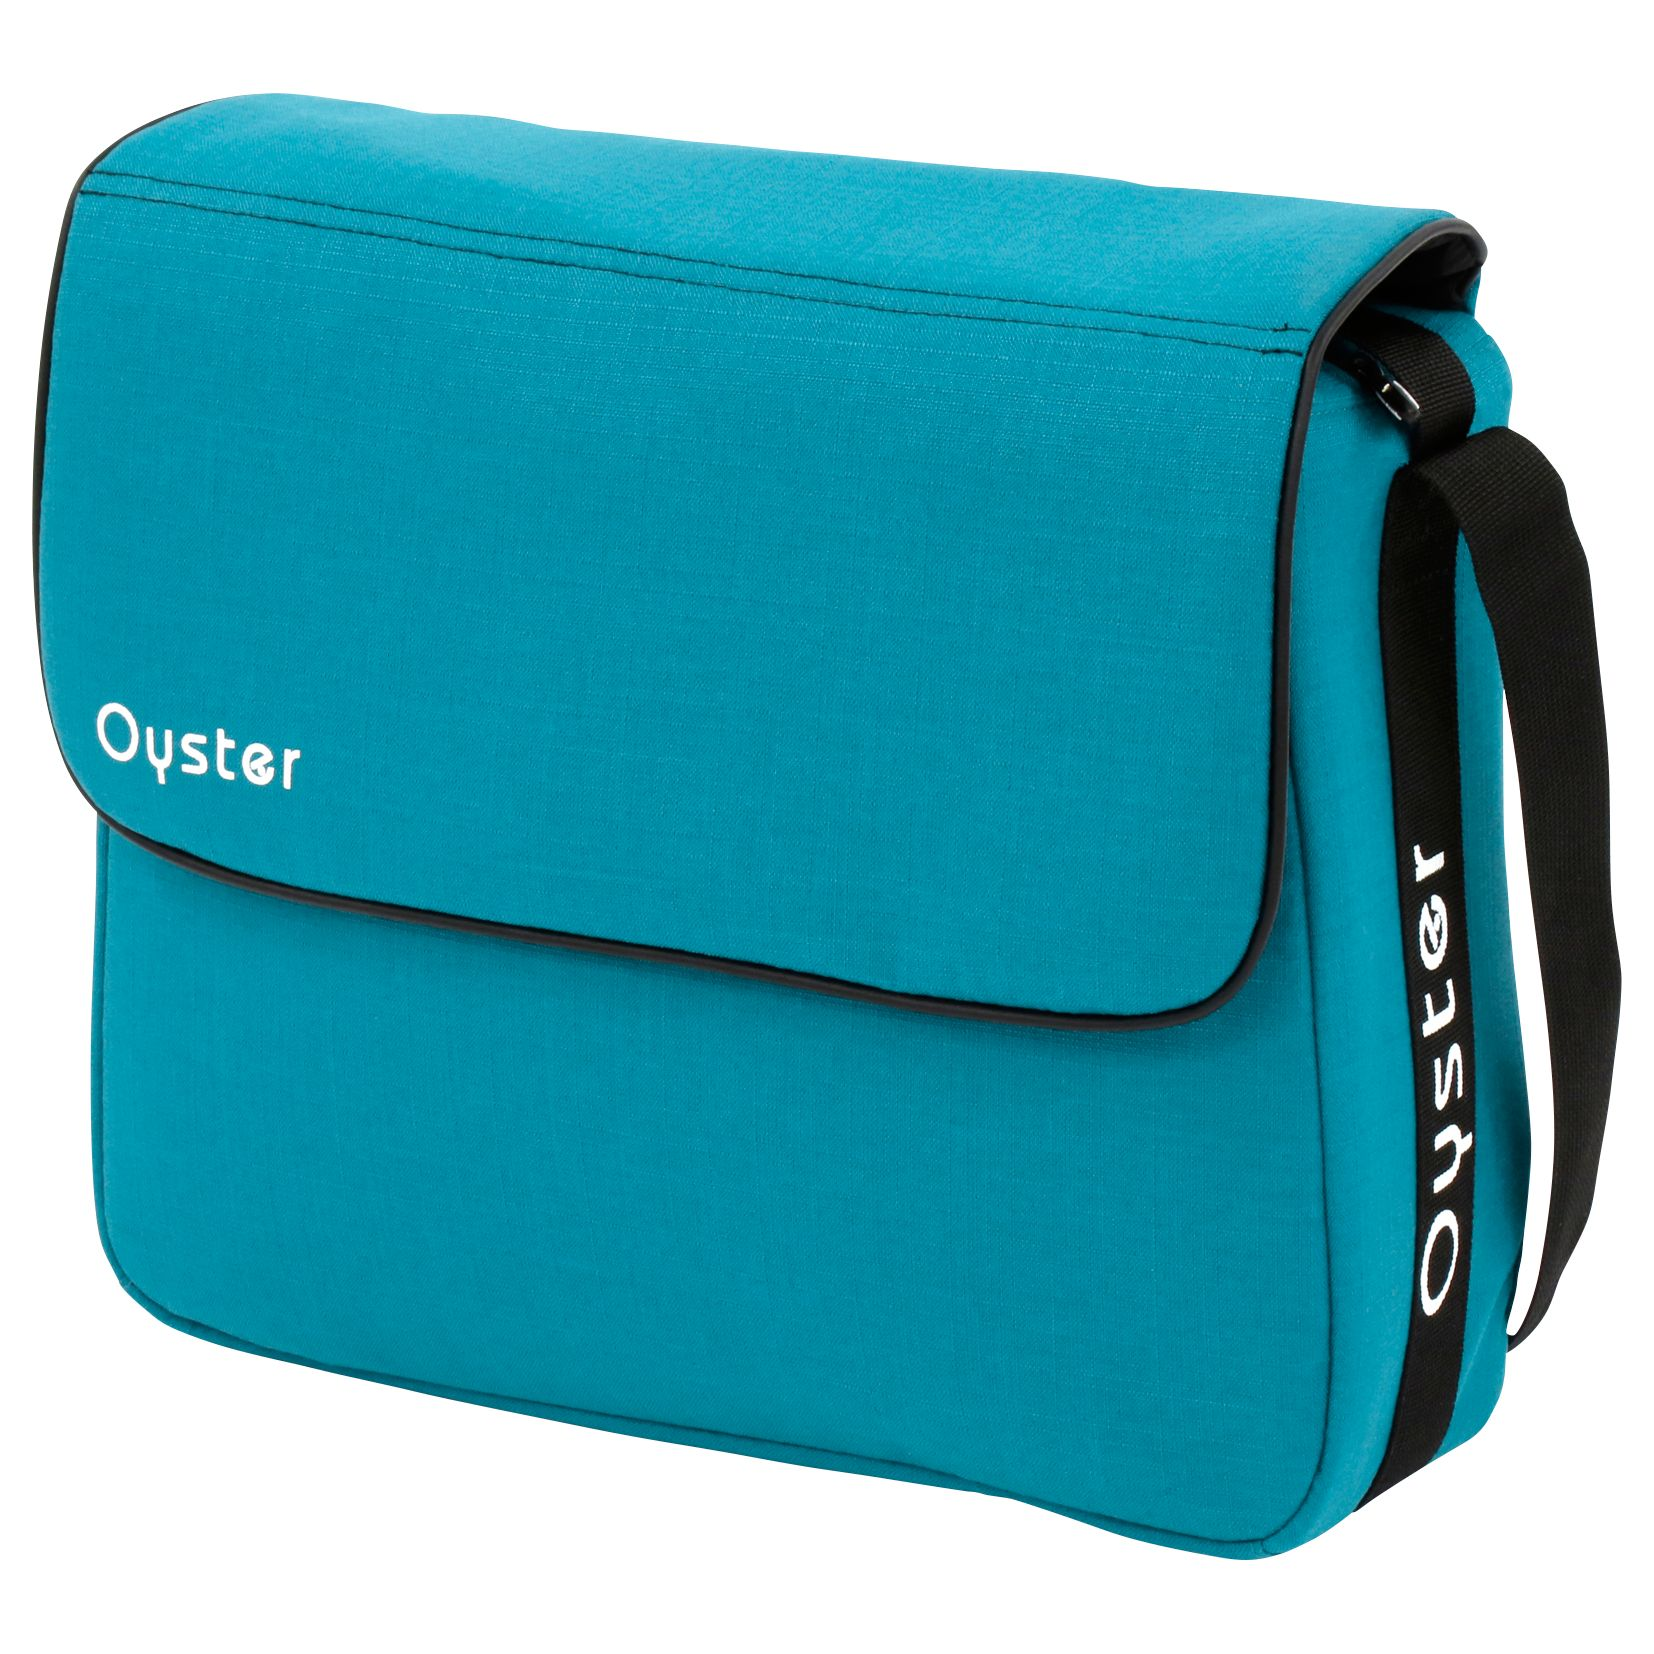 Oyster BabyStyle Oyster Changing Bag